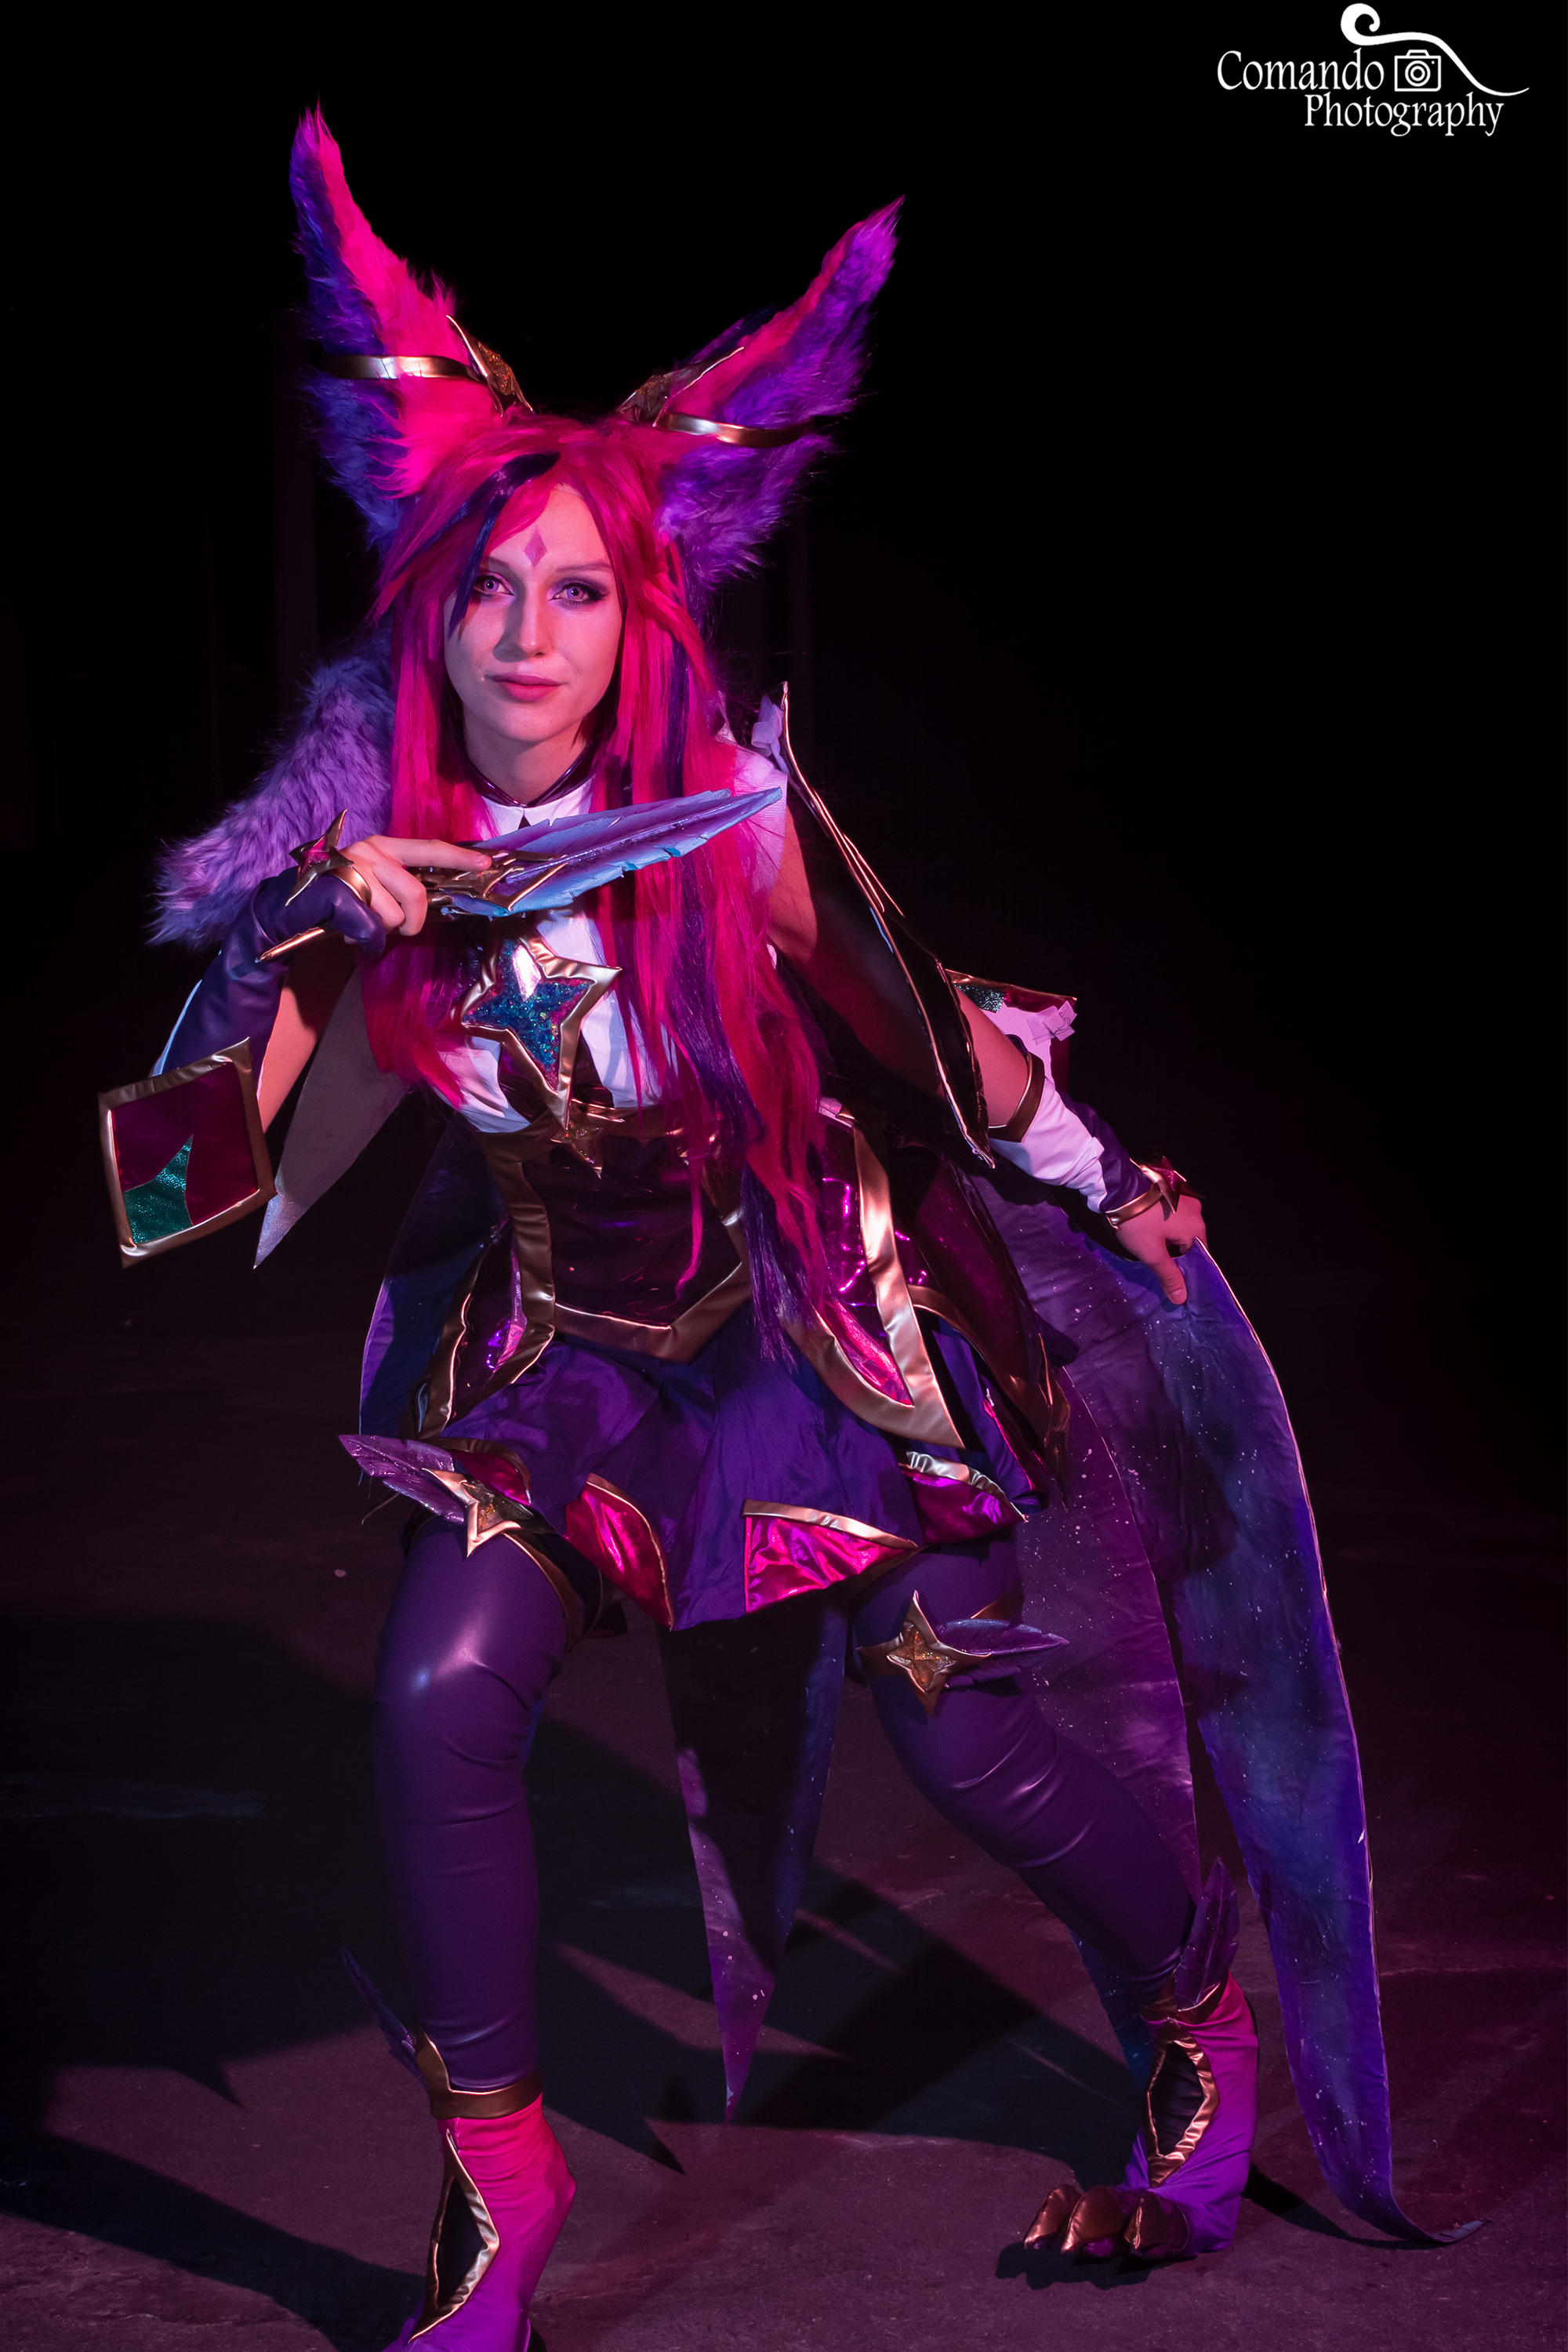 4. Aichan [España] - Xayah Star Guardian [League of Legends]